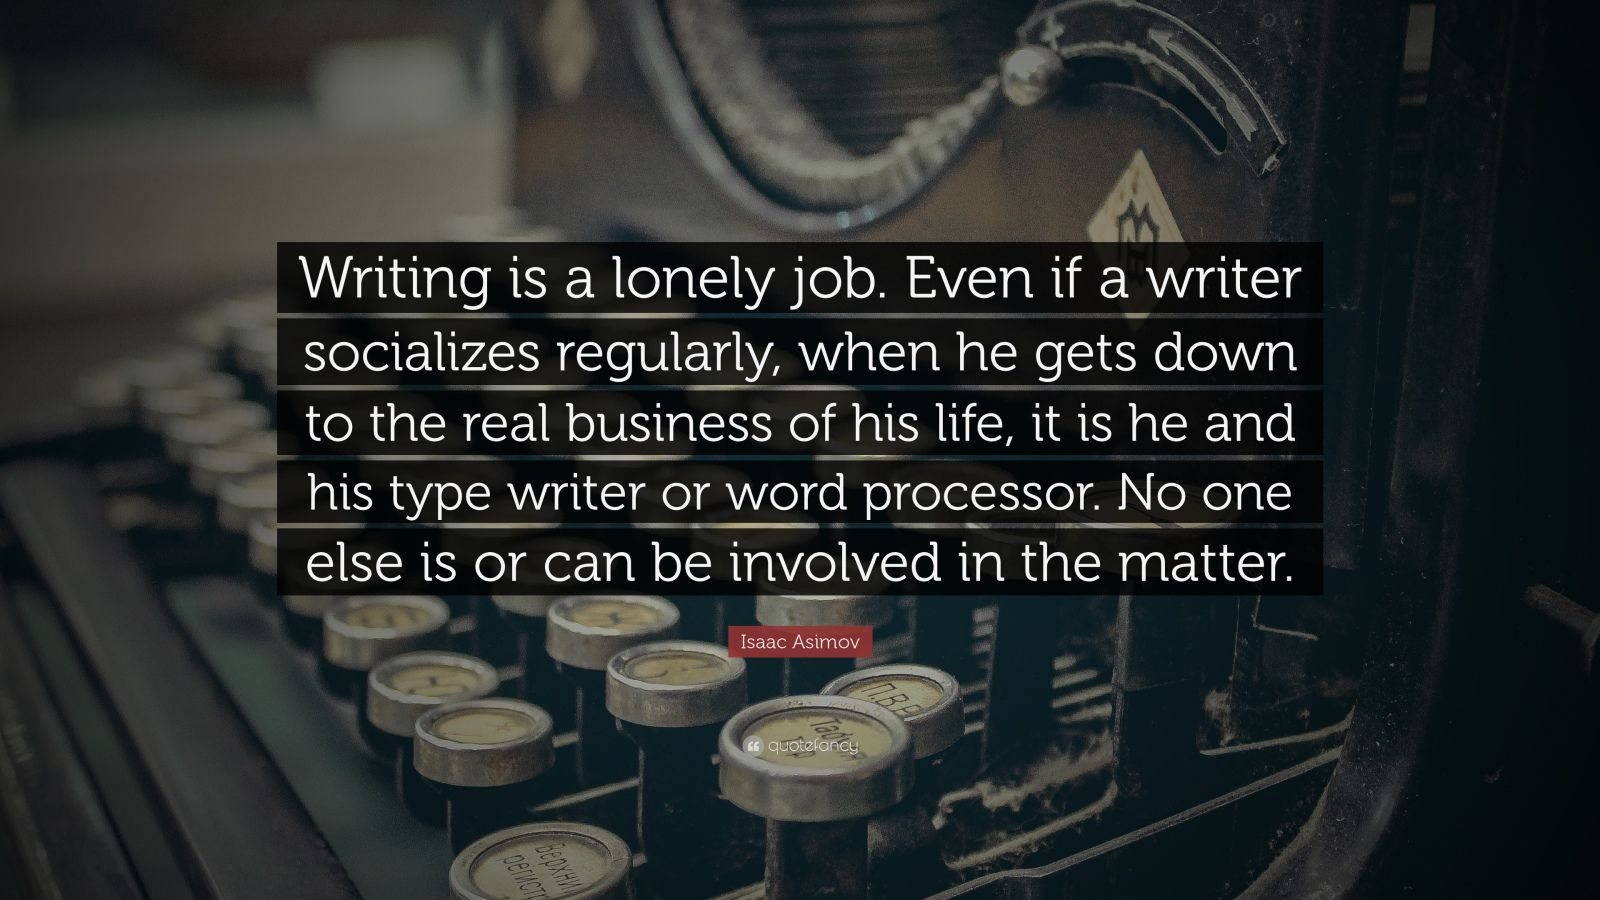 """Isaac Asimov Quote: """"Writing is a lonely job. Even if a writer socializes regularly, when he gets down to the real business of his life, it is he and his type writer or word processor. No one else is or can be involved in the matter."""""""